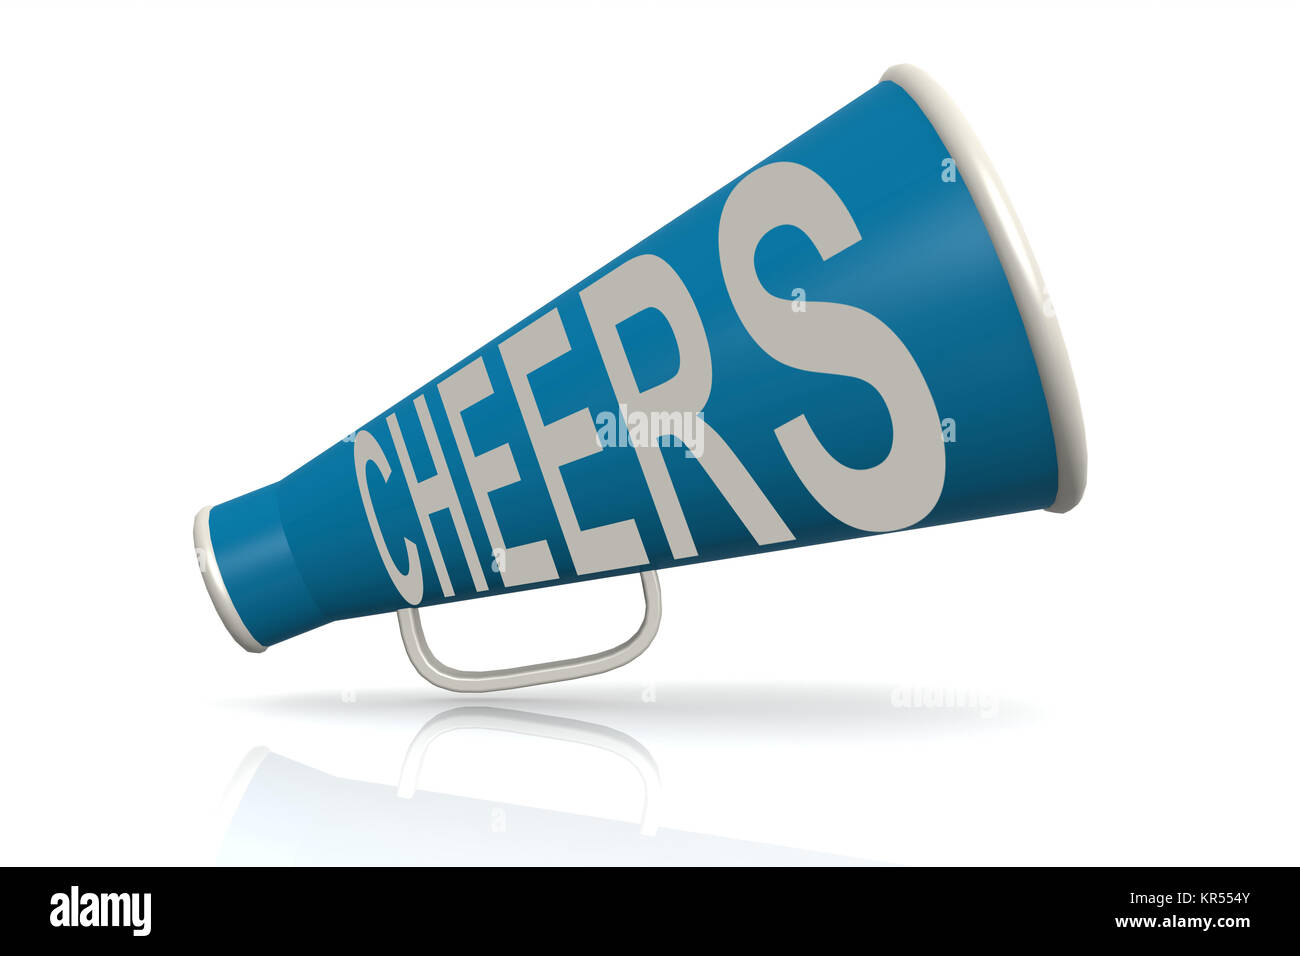 Blue megaphone with cheer word - Stock Image